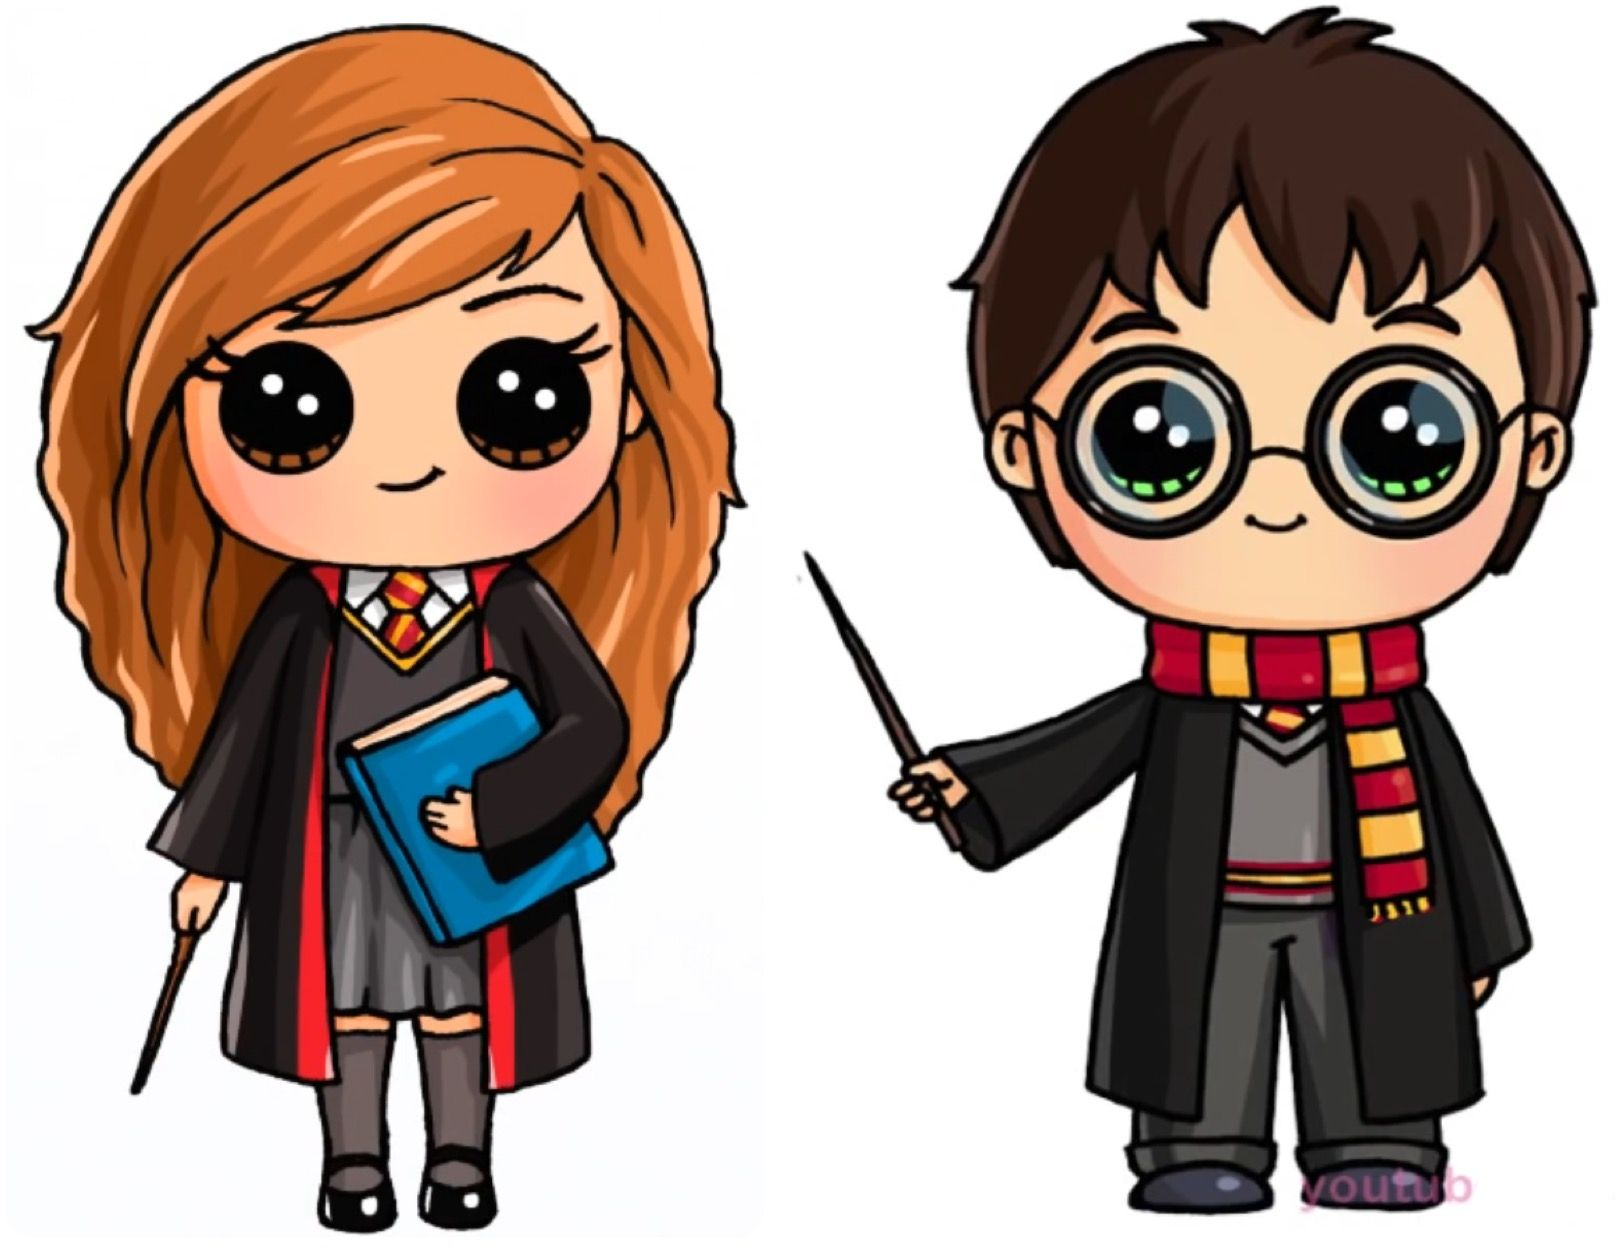 Related Image Cute Harry Potter Harry Potter Drawings